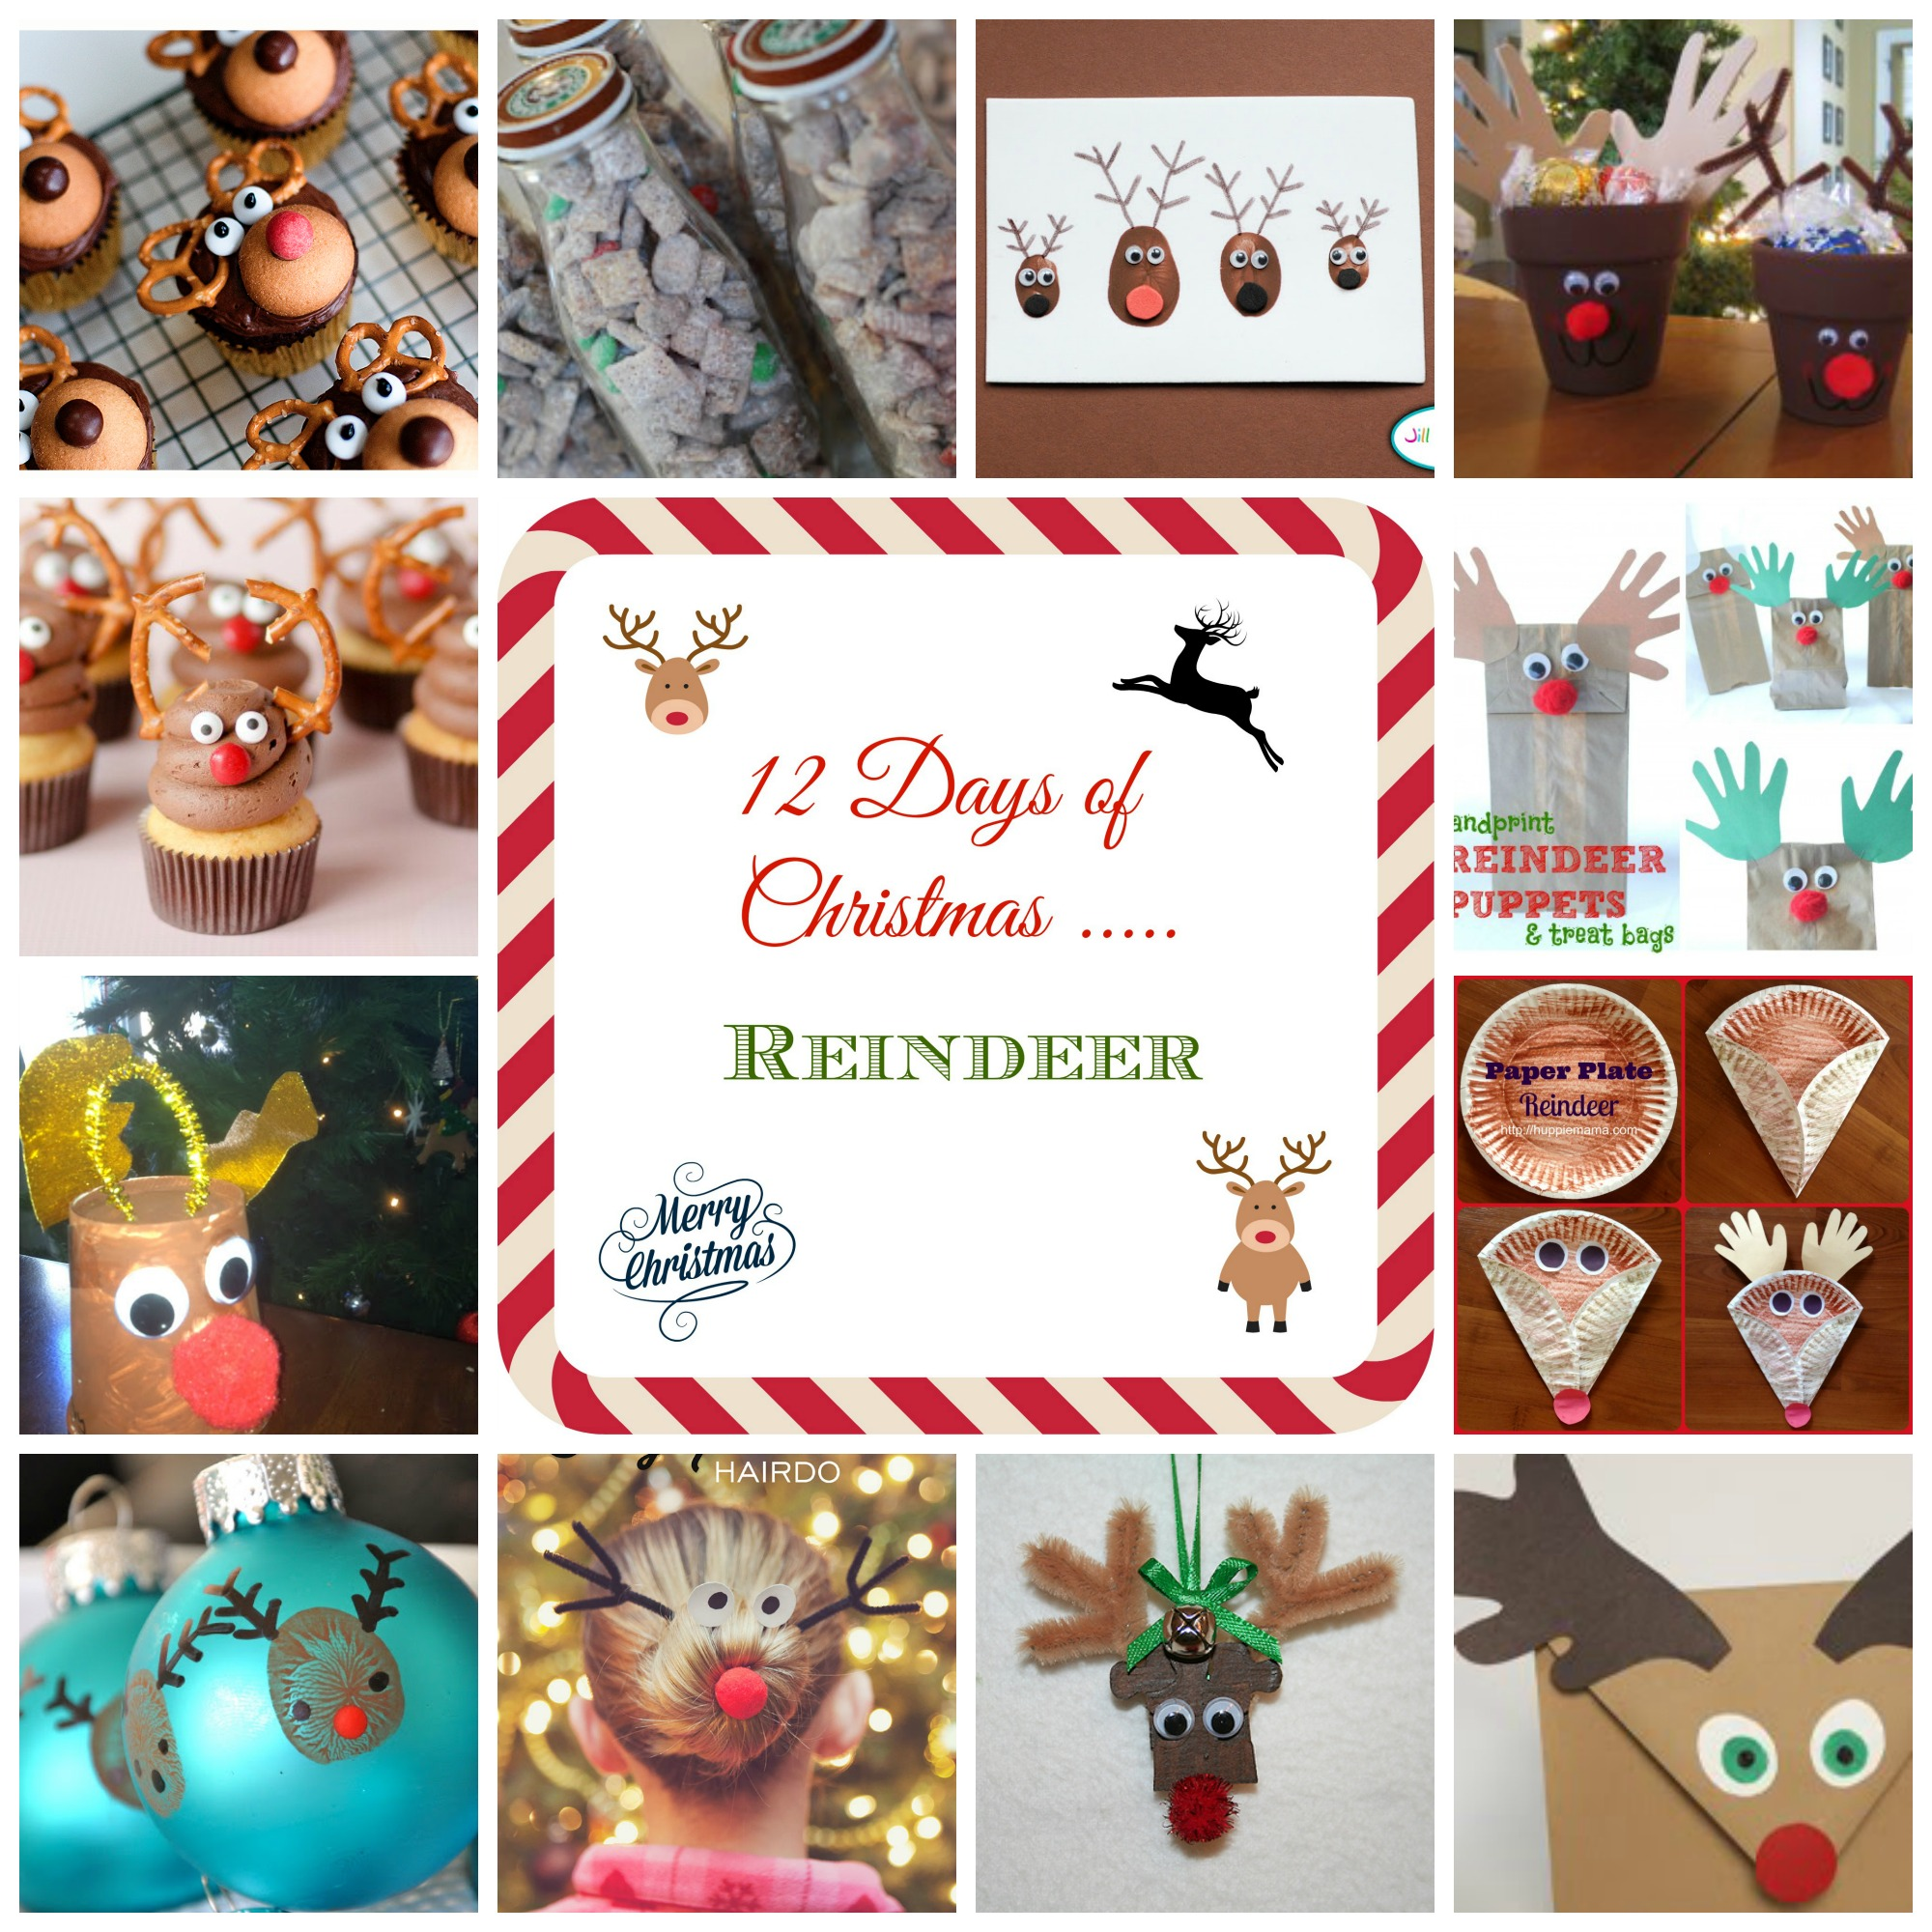 12 Days of Christmas – Reindeer